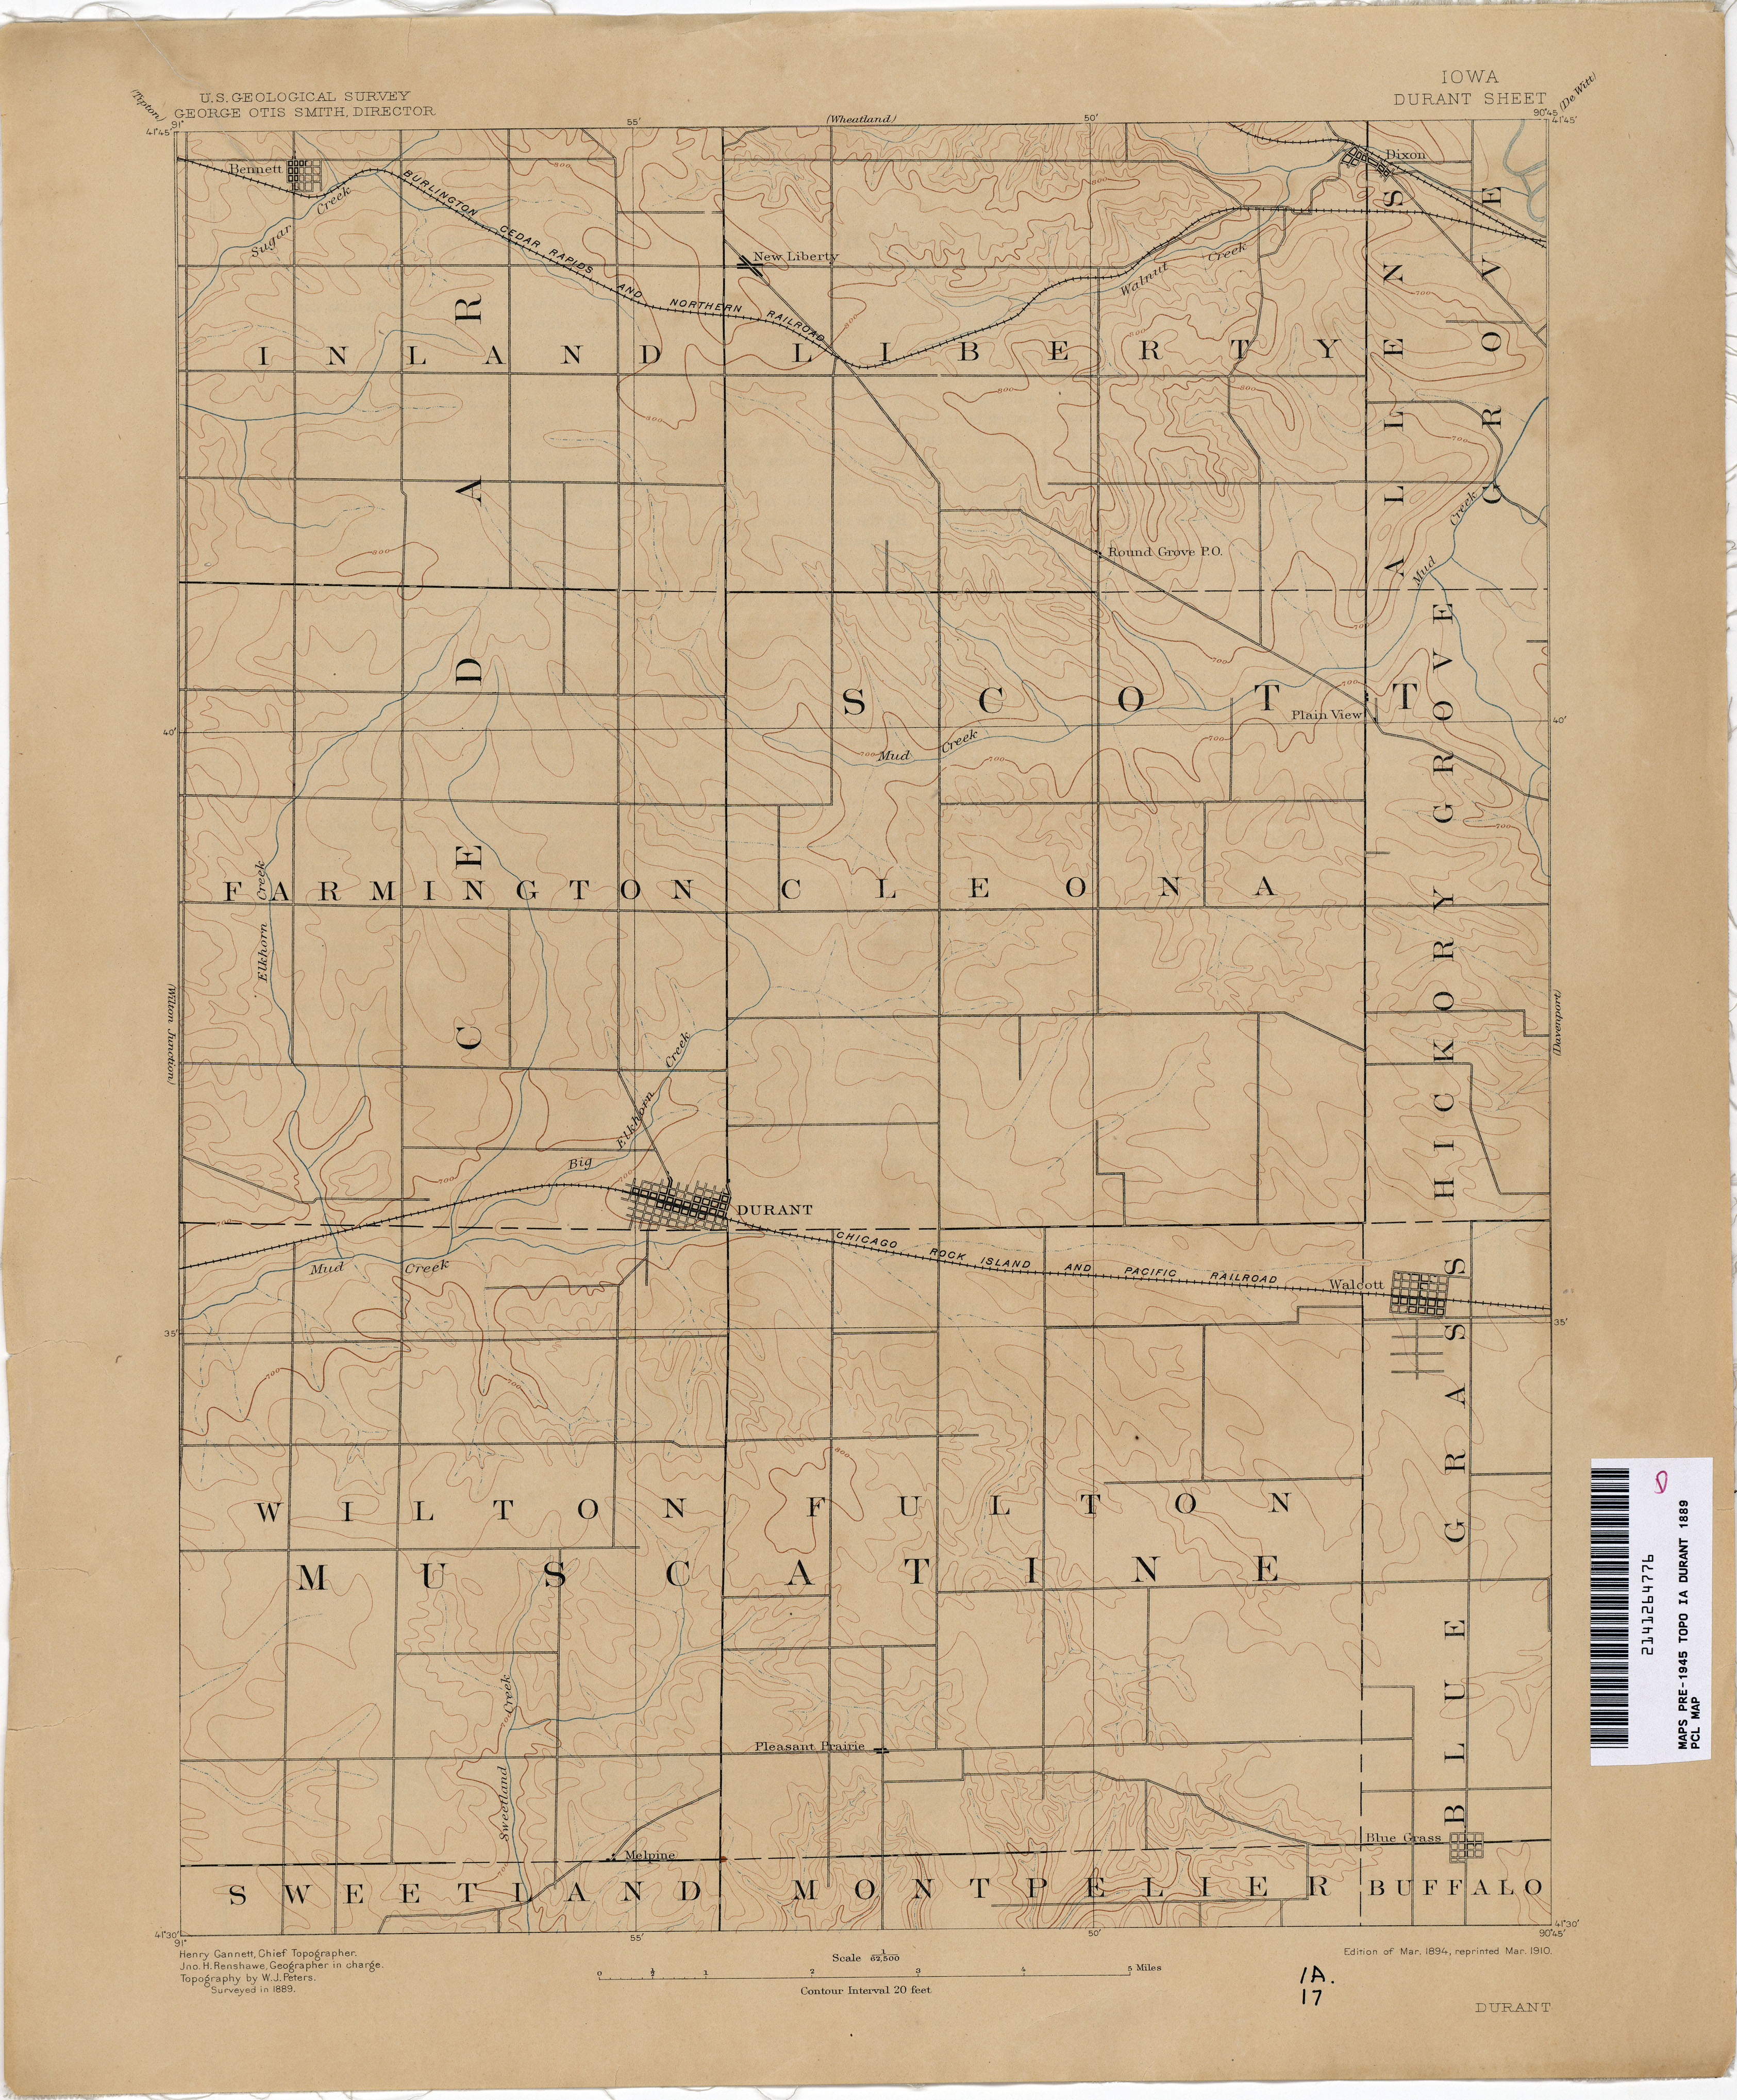 Iowa Historical Topographic Maps Perry Castaneda Map Collection